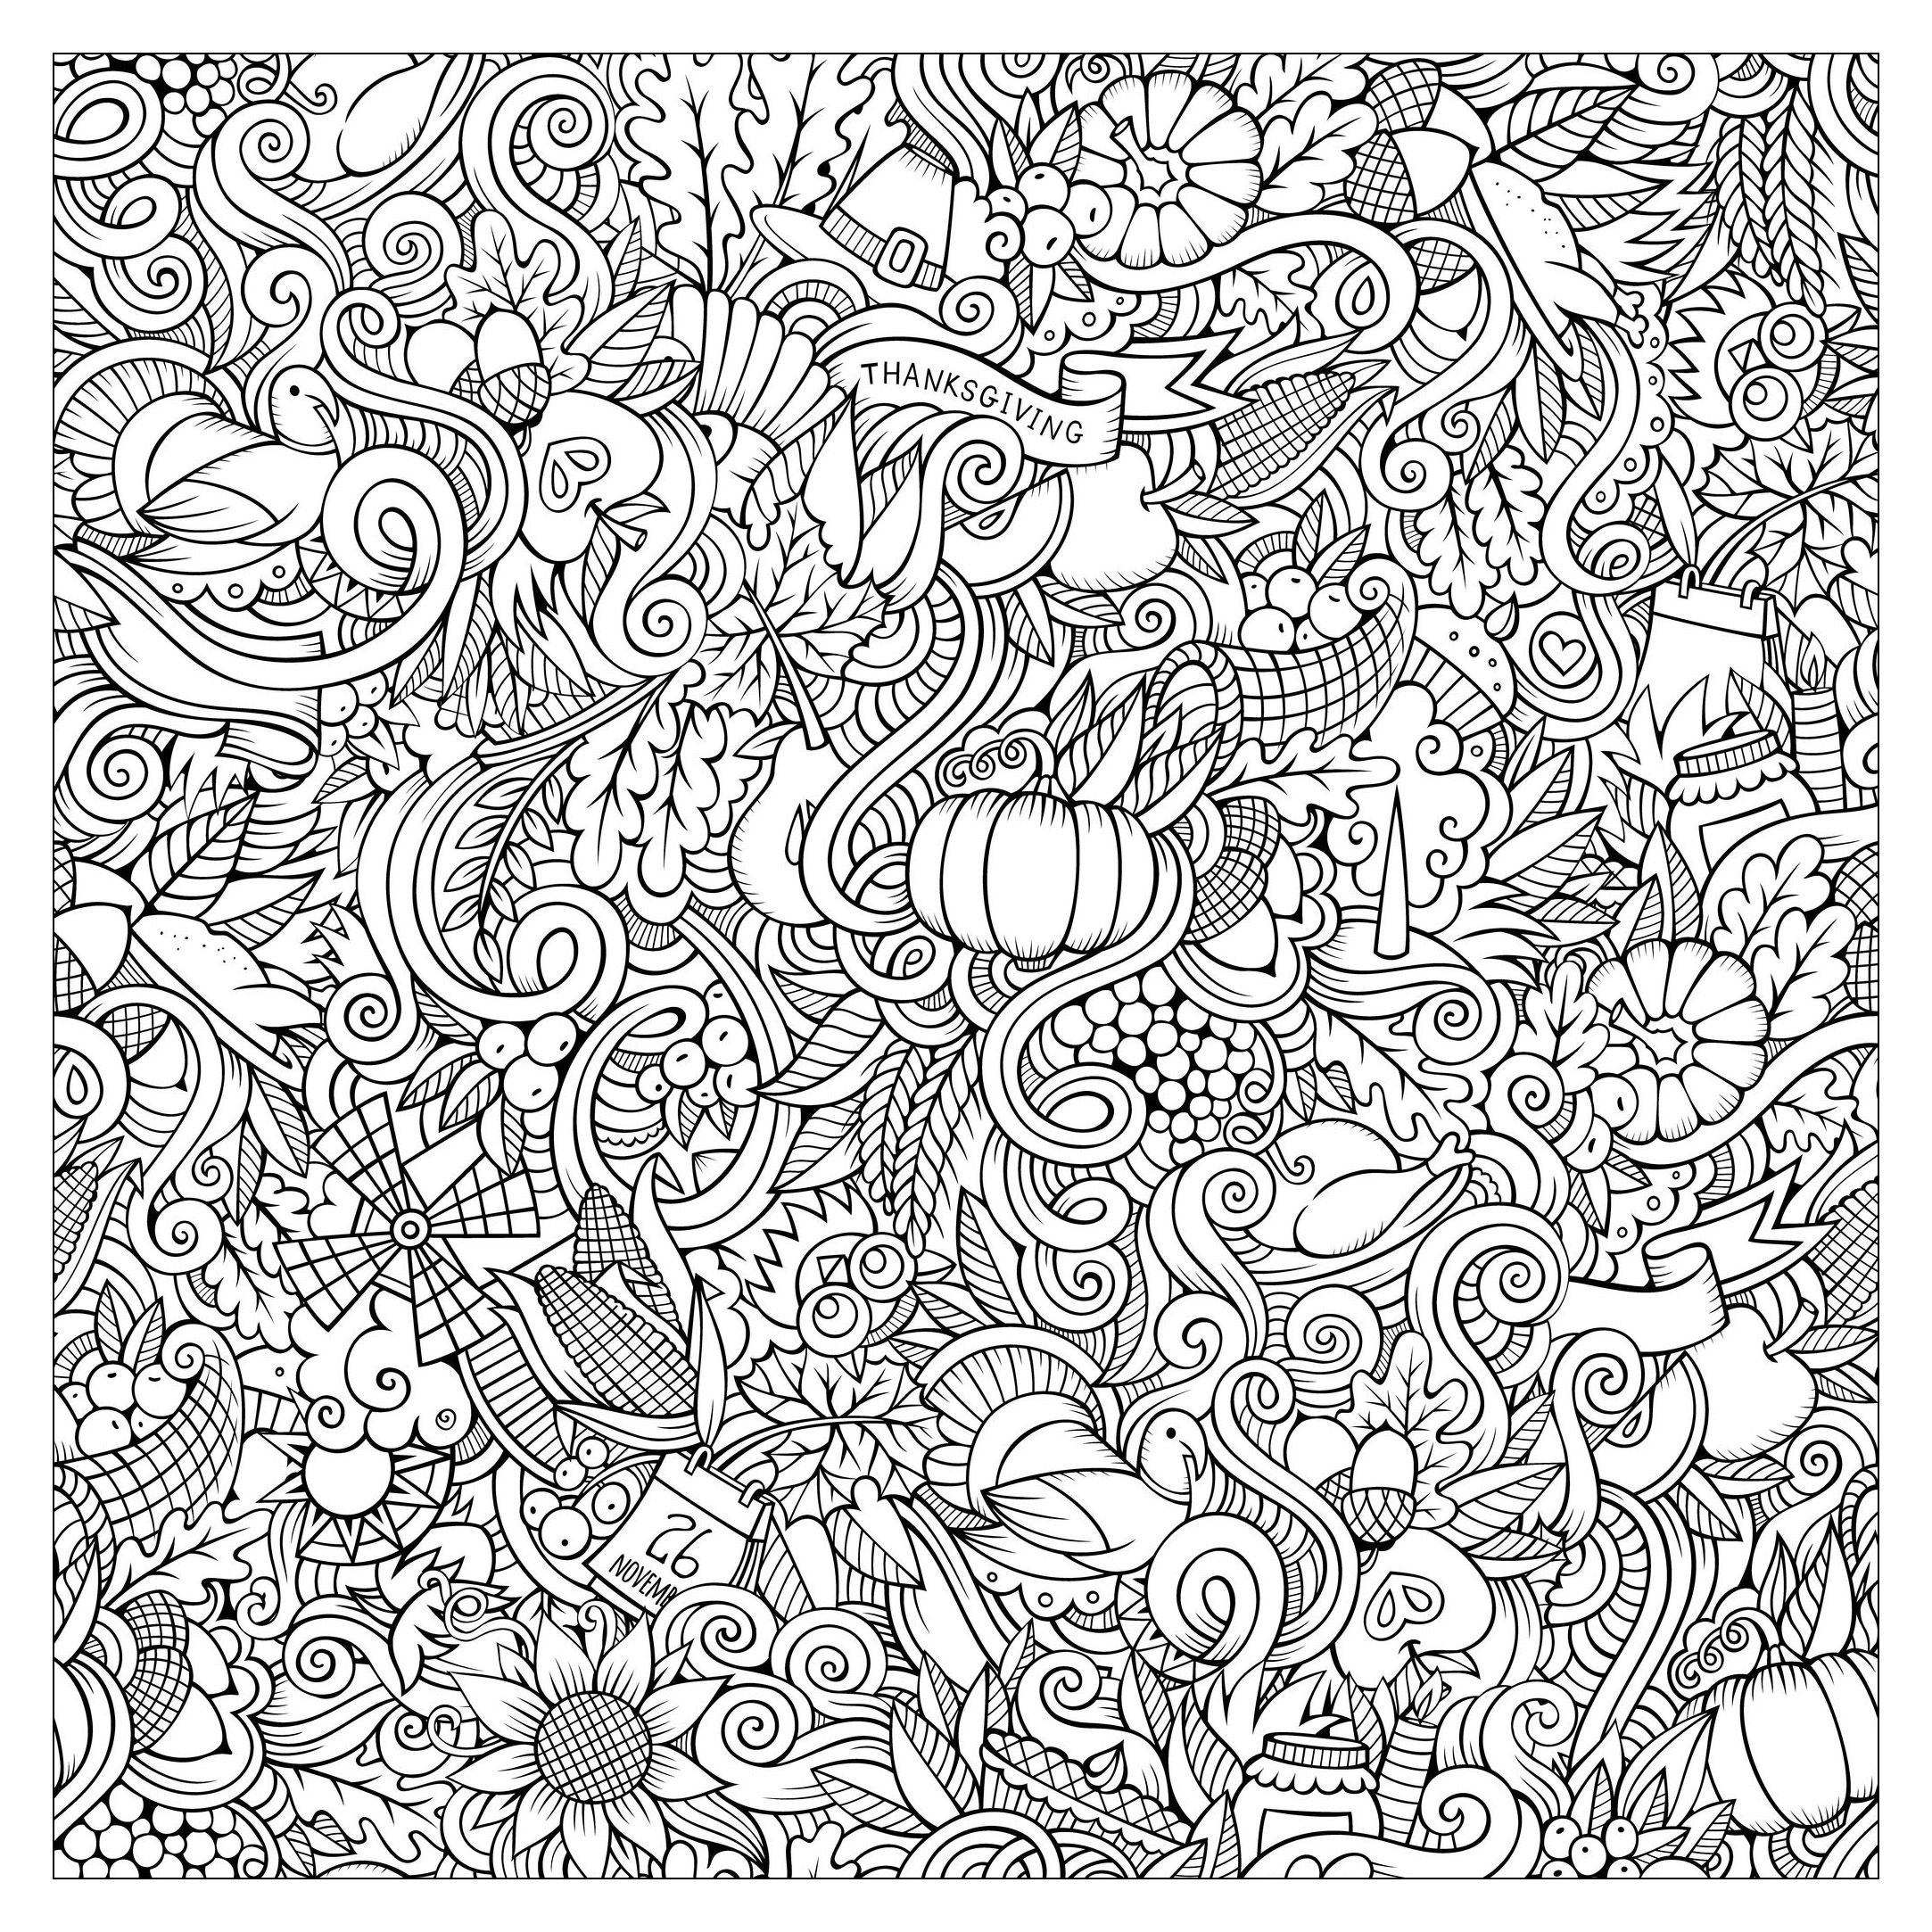 Hand Drawn Doodles To Color On The Subject Of Thanksgiving Autumn Thanksgiving Coloring Pages Fall Coloring Pages Free Thanksgiving Coloring Pages [ 2166 x 2166 Pixel ]